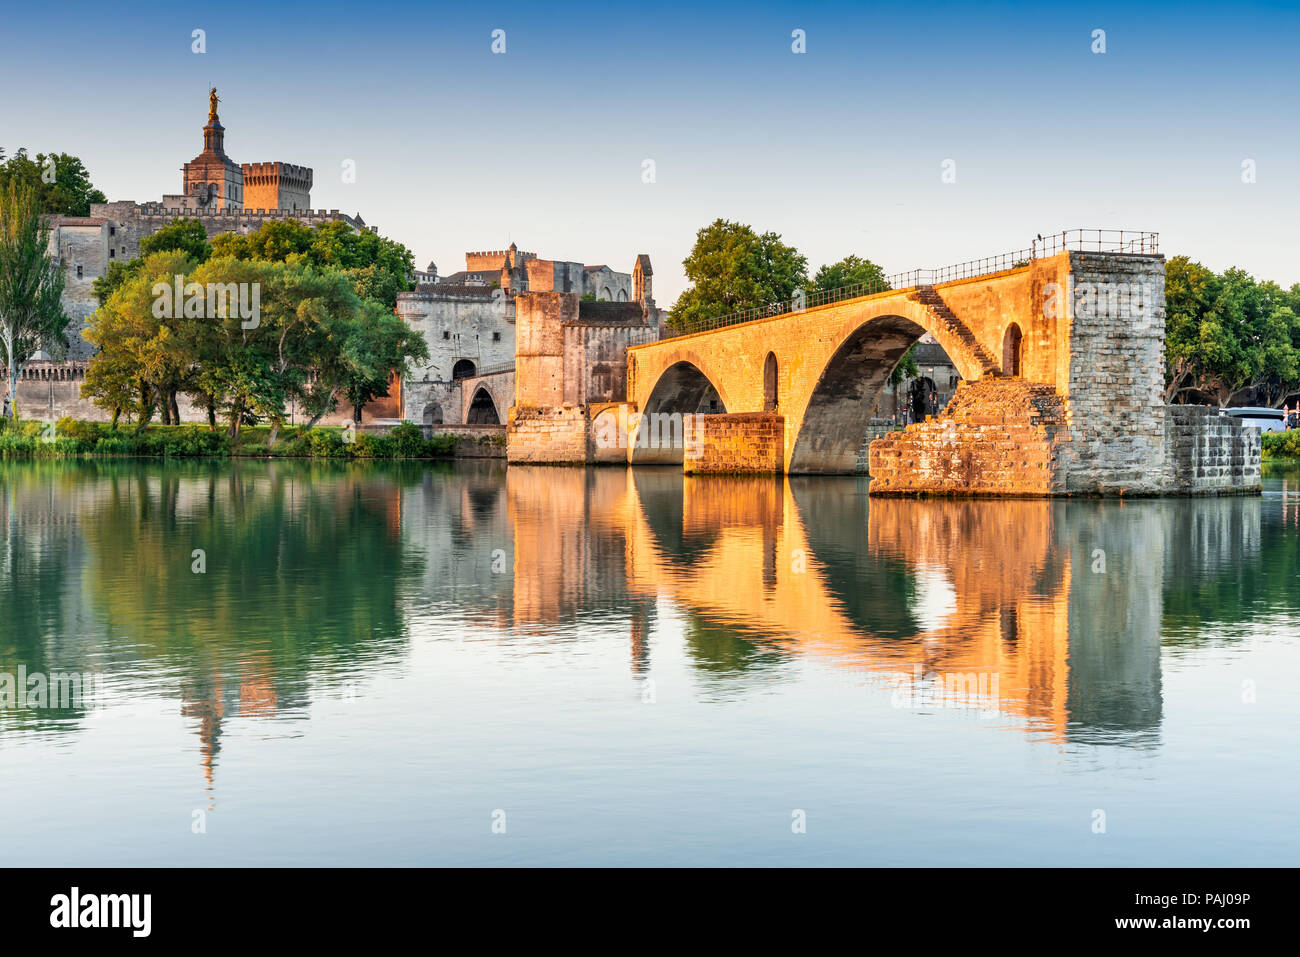 Avignon Bridge with Popes Palace and Rhone River at sunrise, Pont Saint-Benezet, Provence, France. - Stock Image